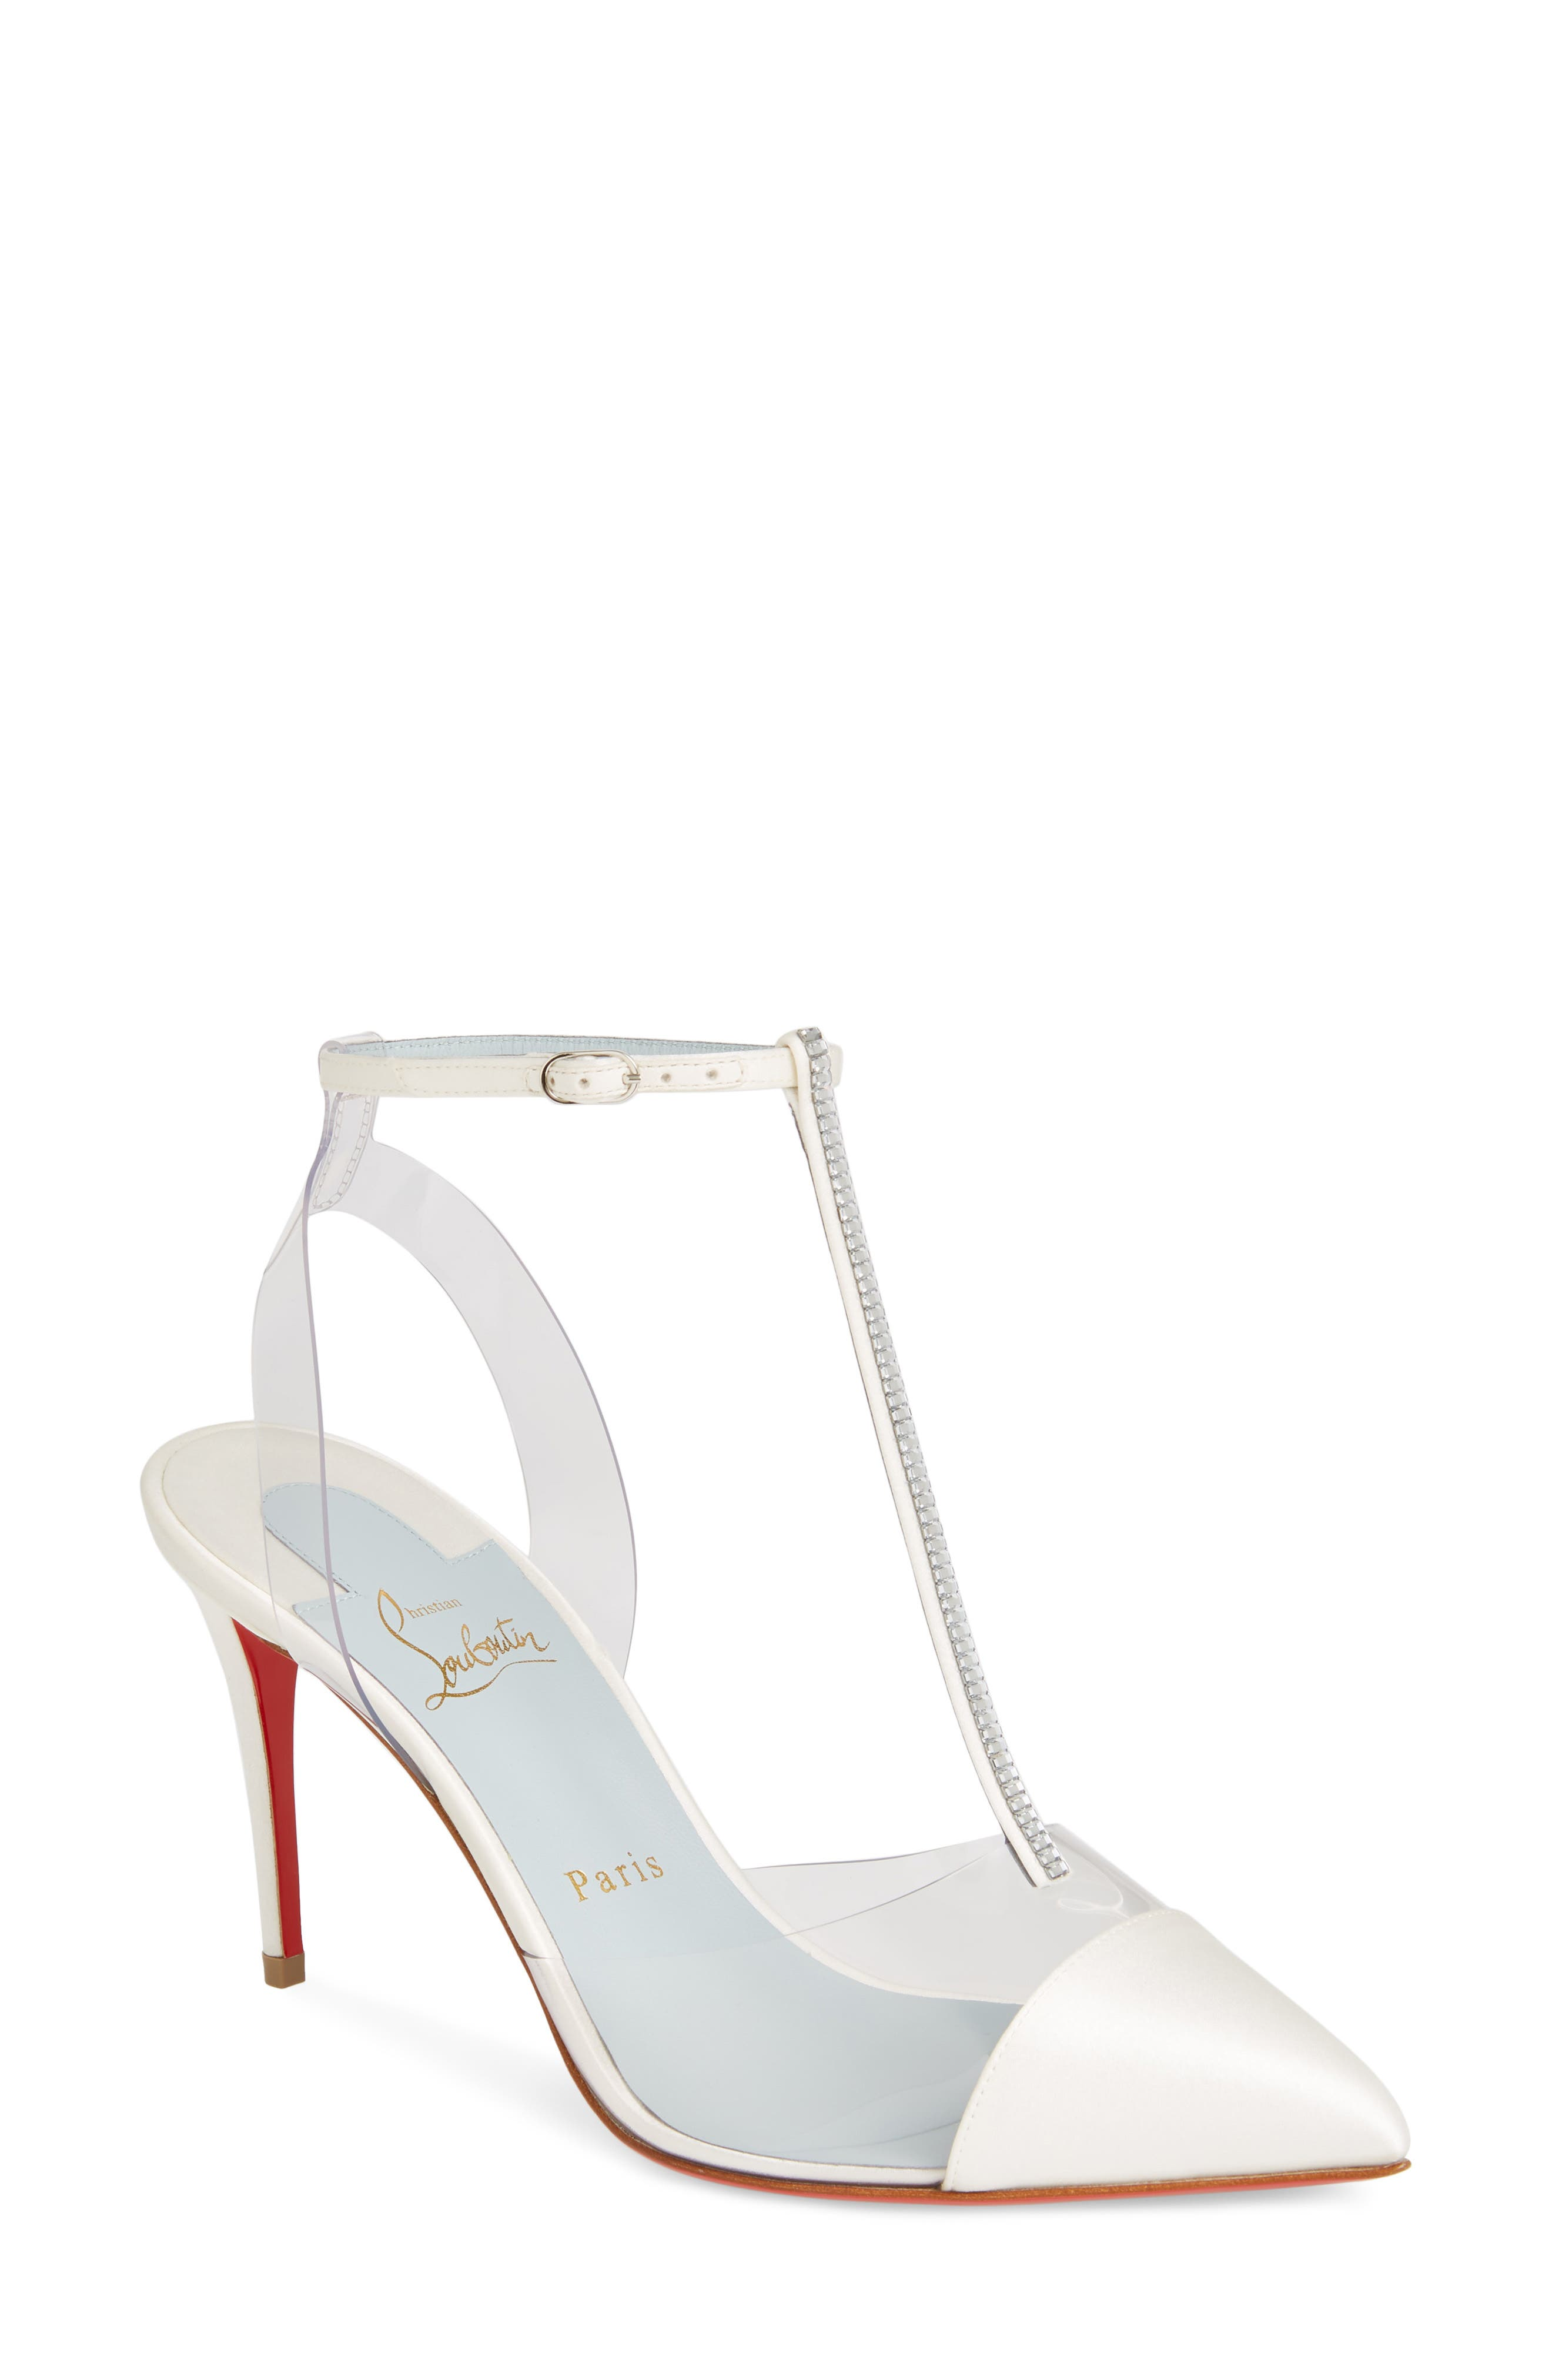 CHRISTIAN LOUBOUTIN Nosy Jewel Clear Pump, Main, color, OFF WHITE